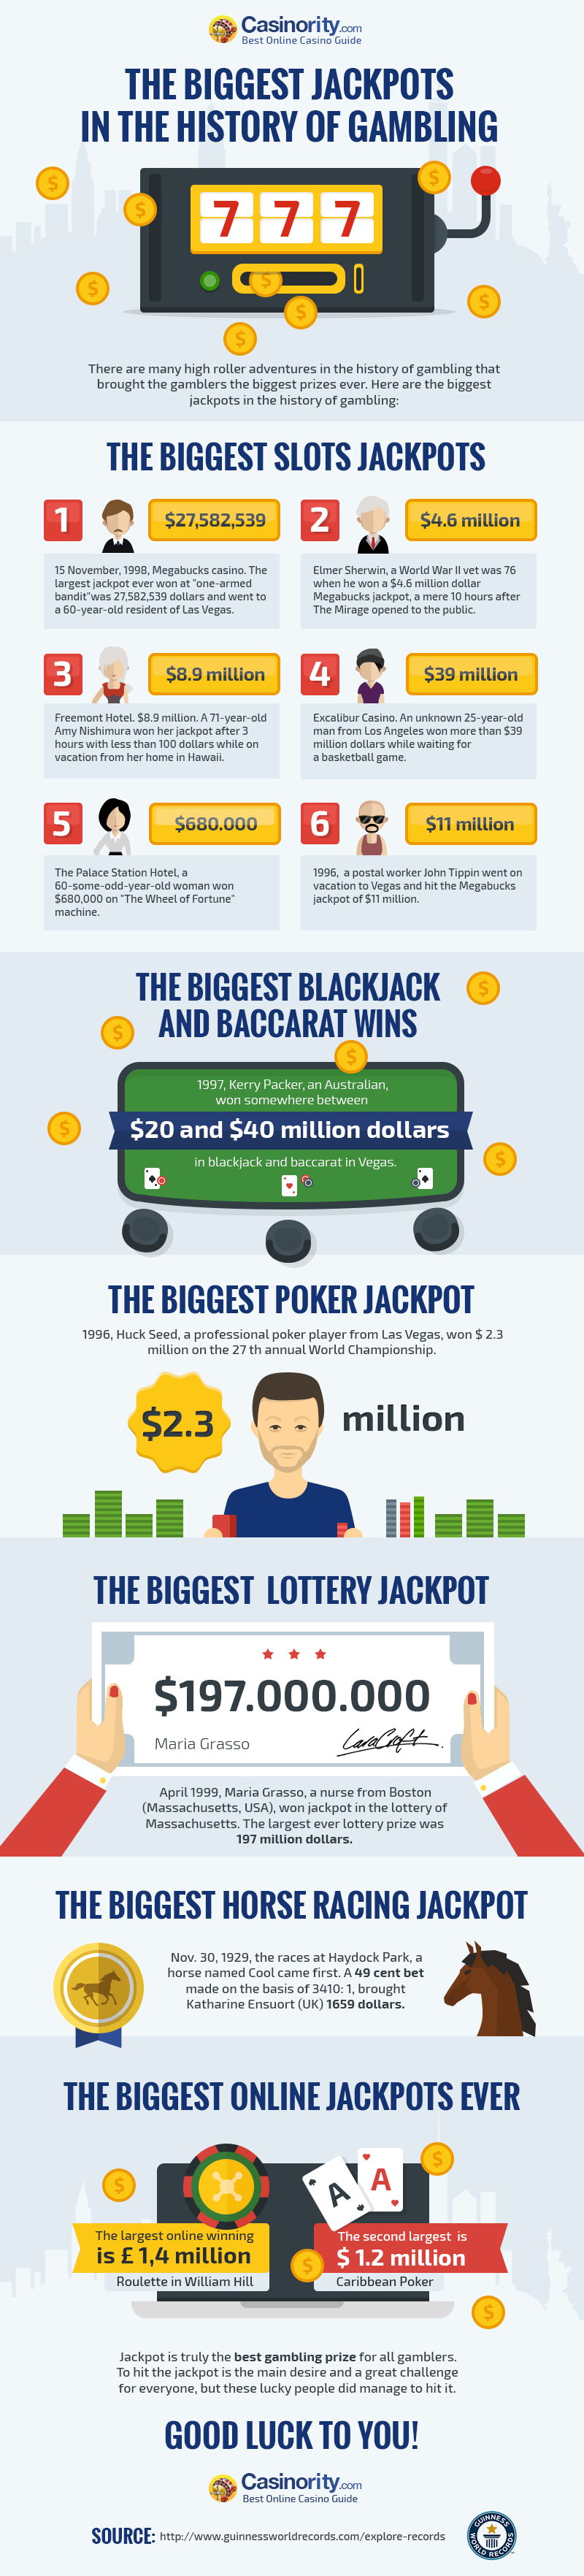 The Biggest Jackpots in the History of Gambling by Casinority.com